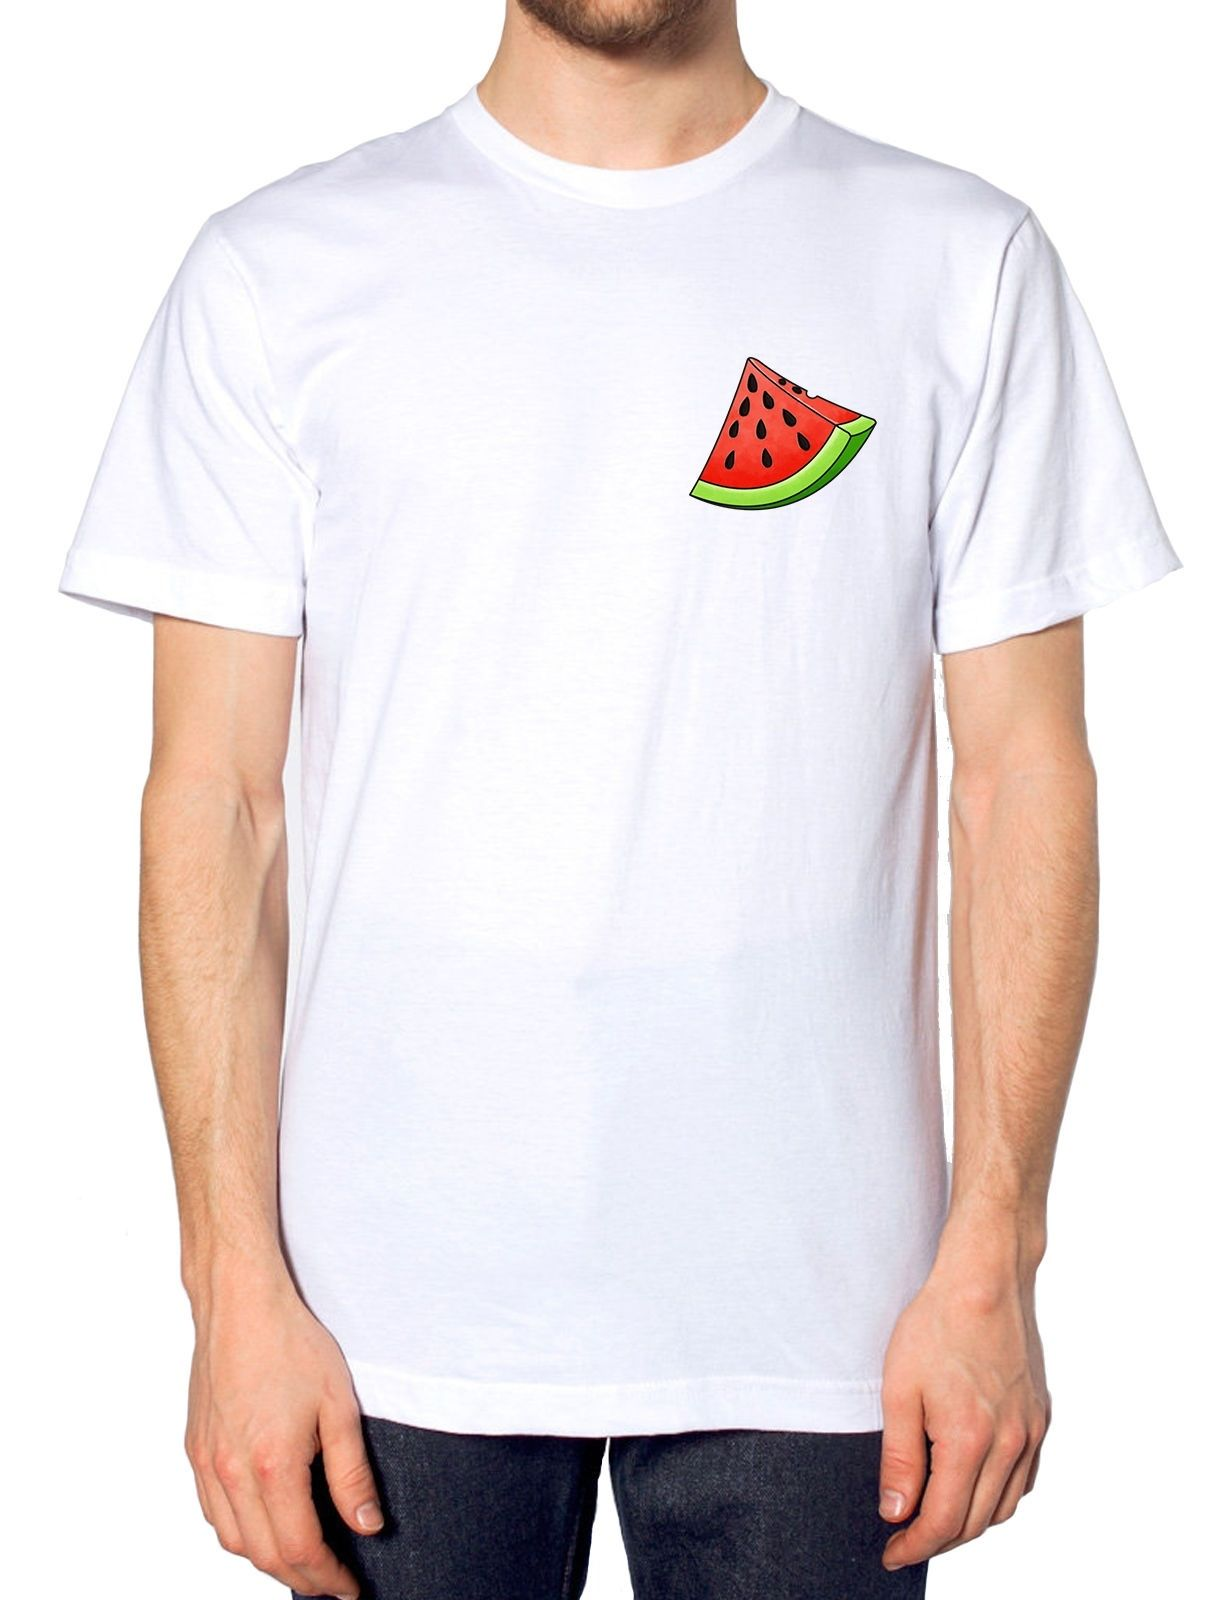 151ee80e8 Product image 1 Watermelon Logo T Shirt Summer Fashion Fruit Healthy Tumblr  Indie Style Mens Kid